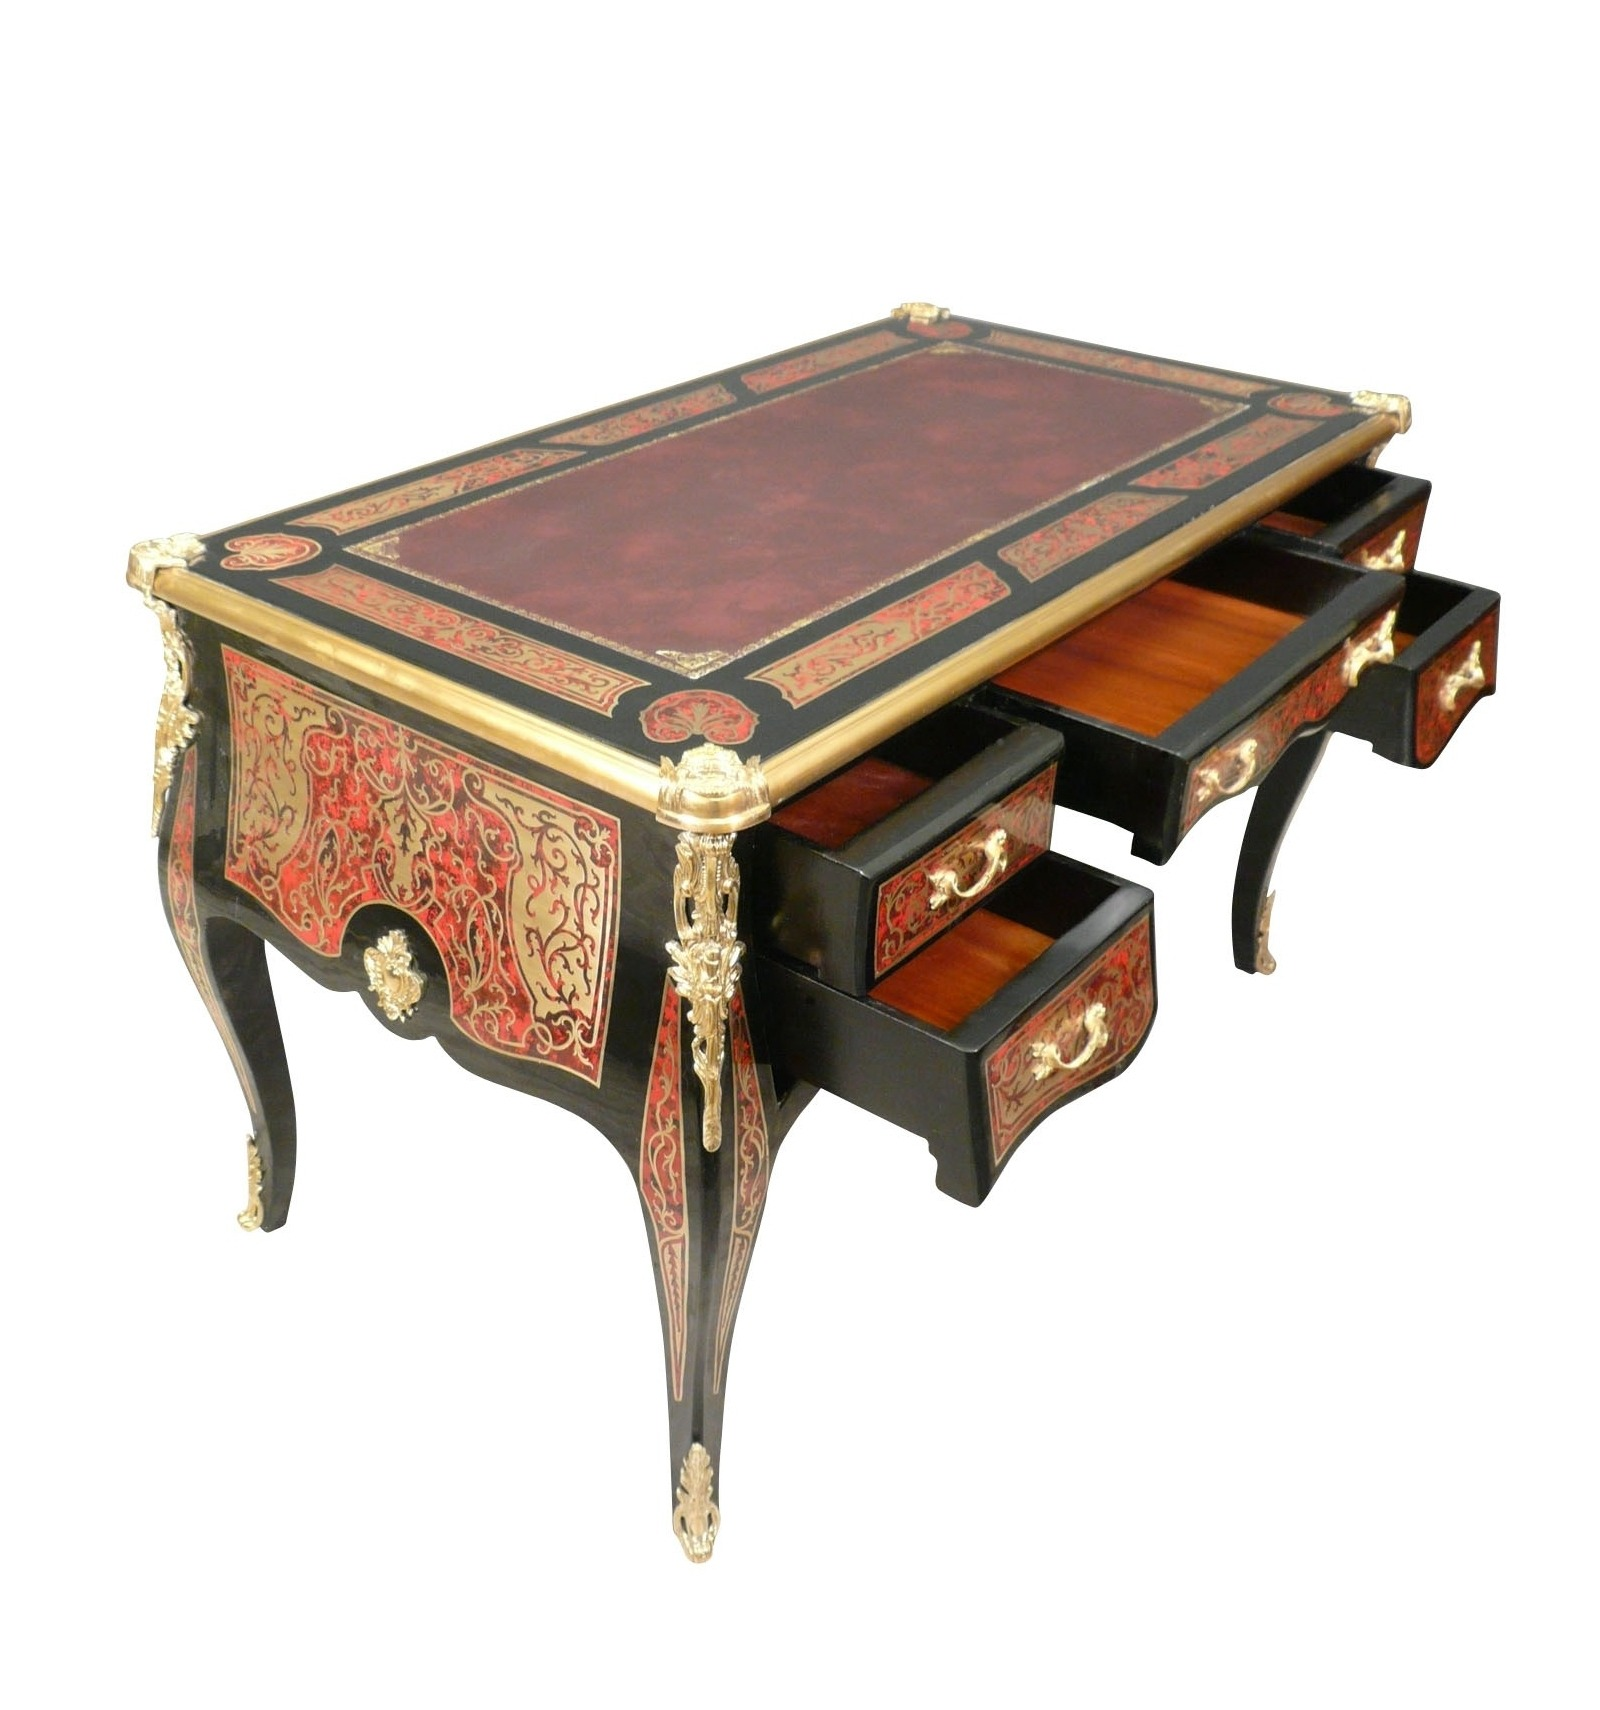 bureau louis xv g durandimportant louis xv style desk tobogan antiques louis xv style rococo. Black Bedroom Furniture Sets. Home Design Ideas